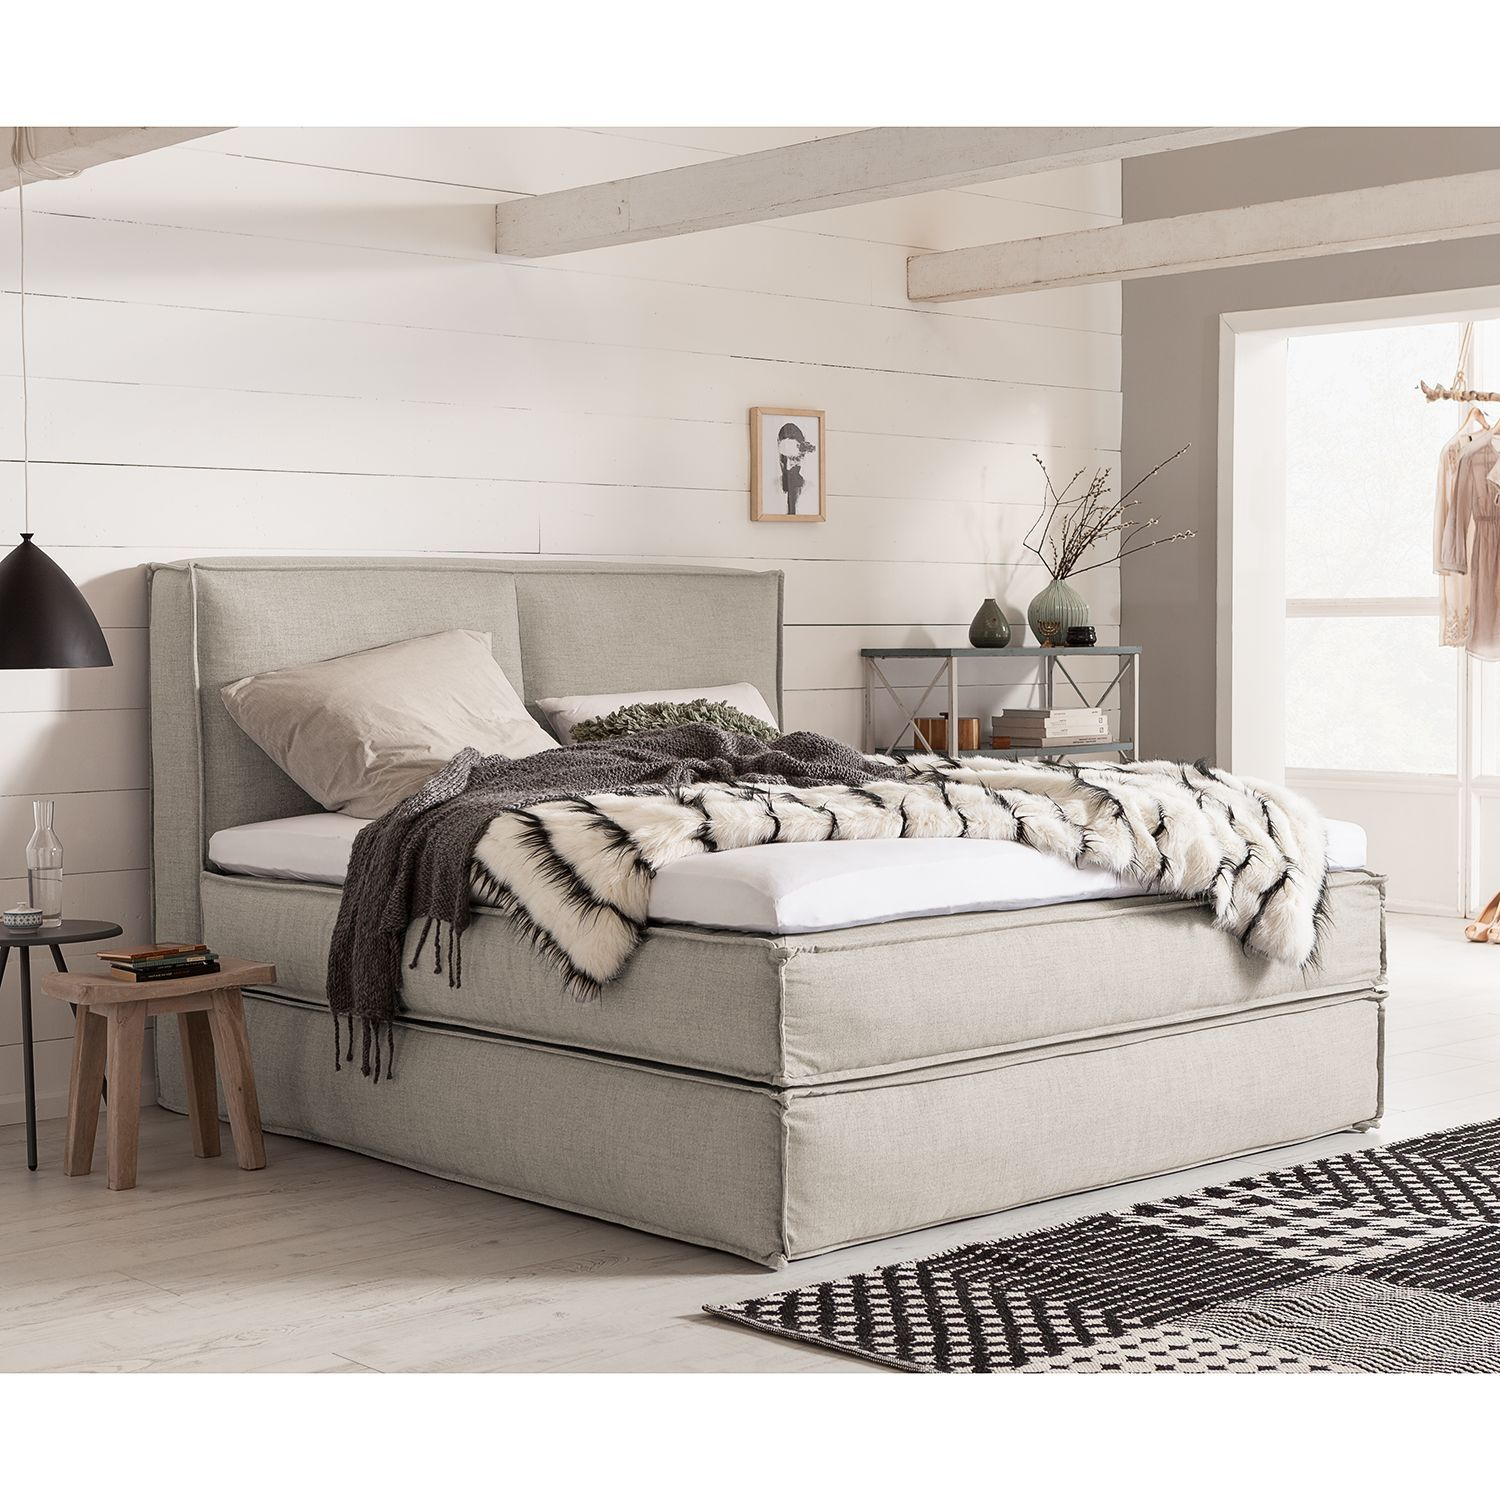 Boxspringbett Kinx In 2020 Bed Bed Springs Parents Room